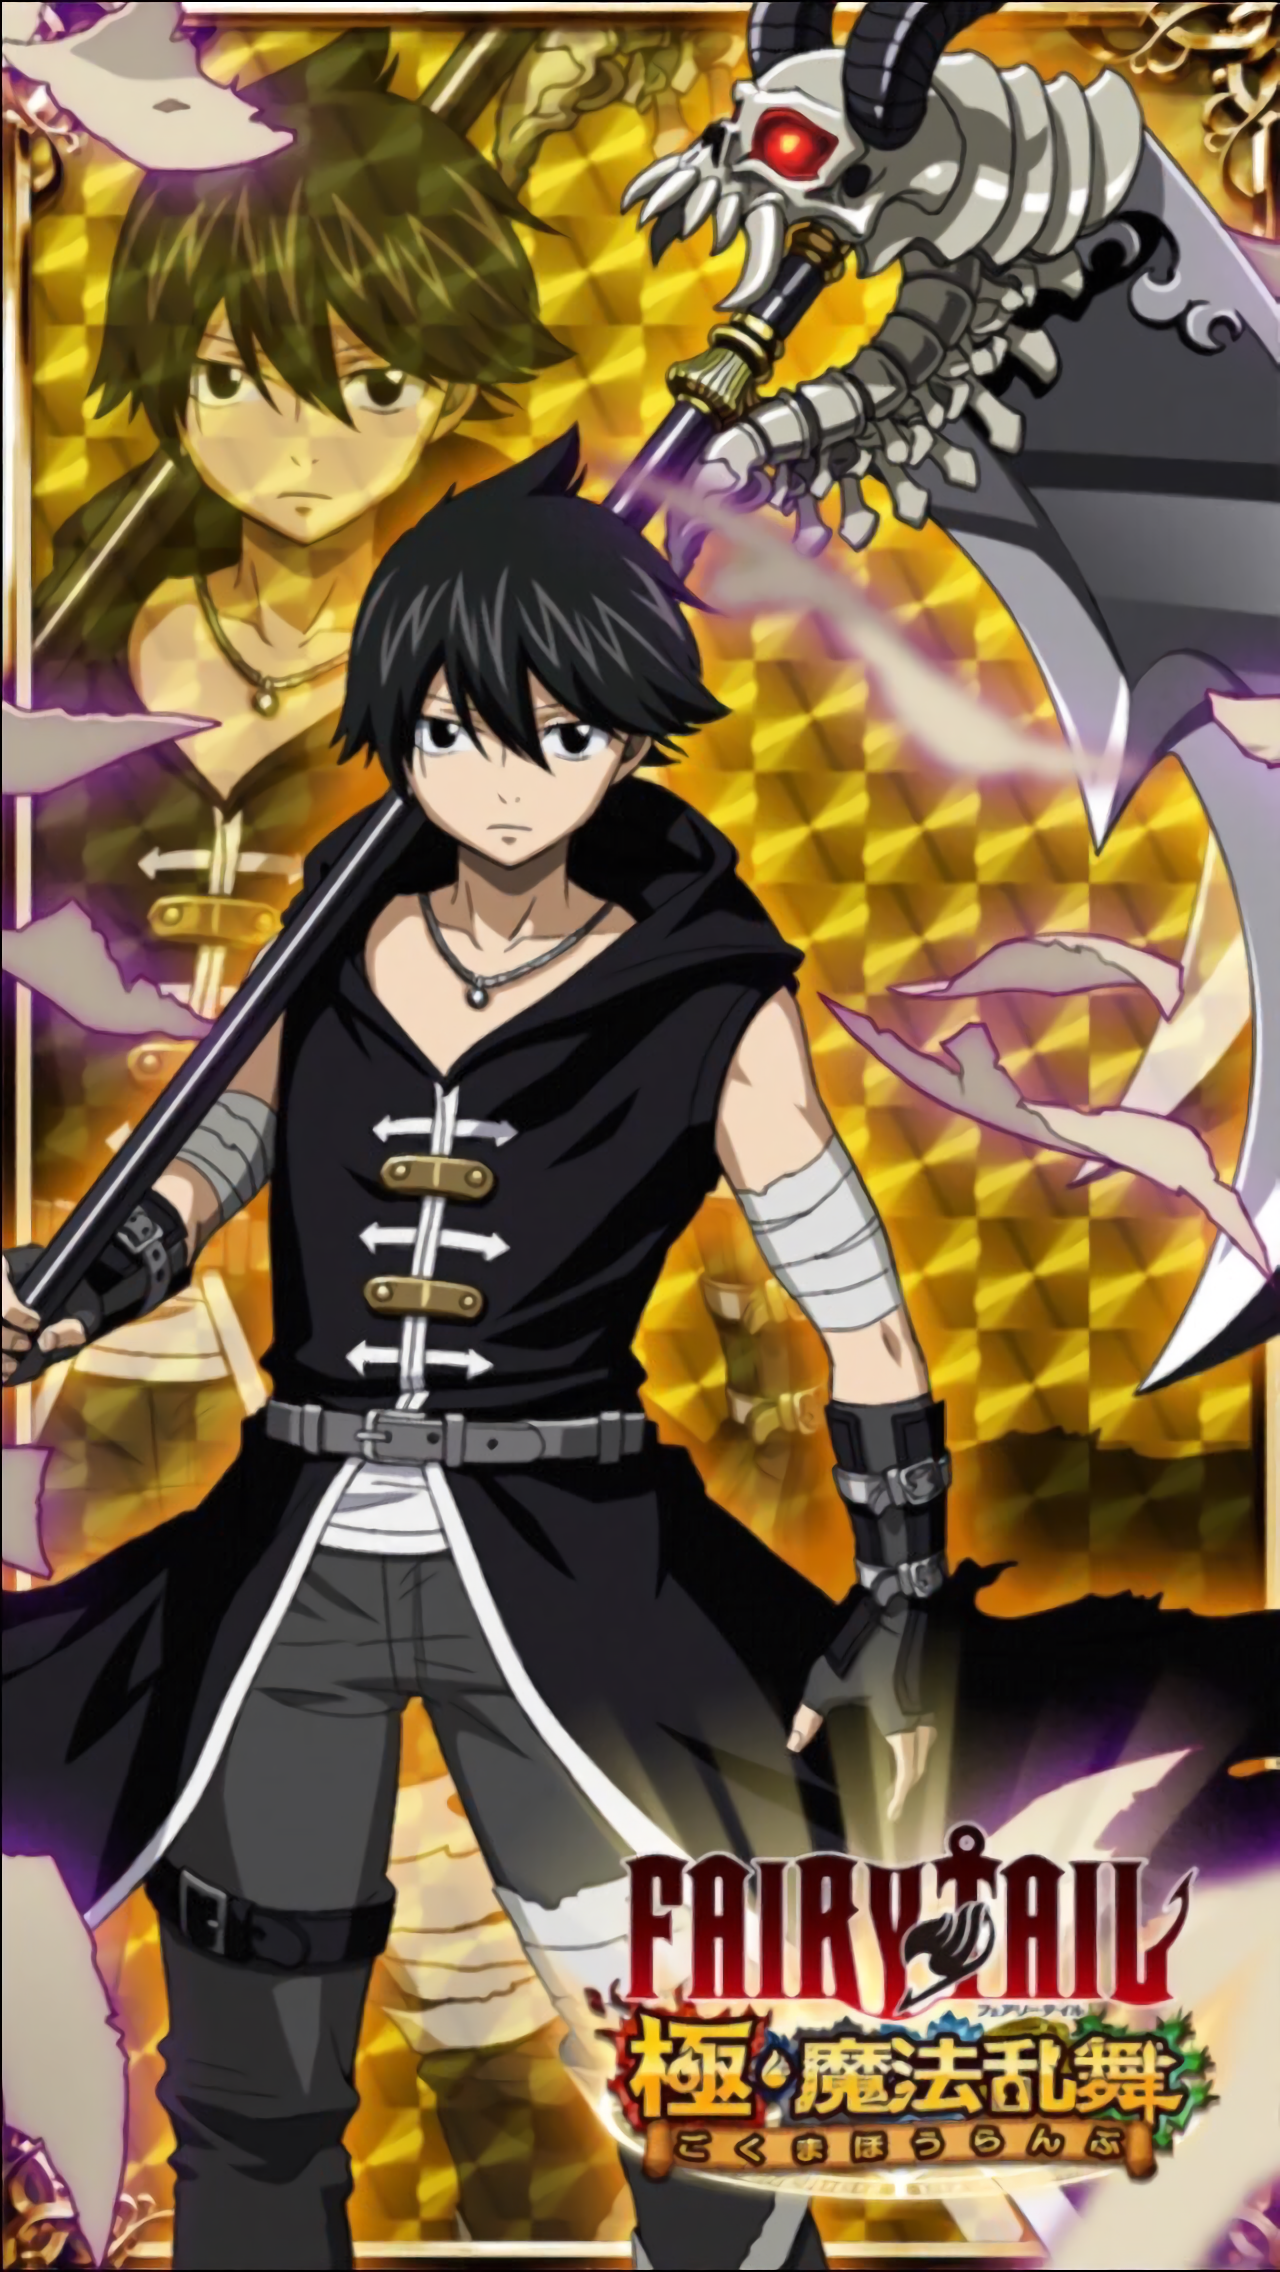 Fairy Tail Ultimate Dance Of Magic Zeref Fairy Tail Fairy Tail Anime Fairy Tail Photos